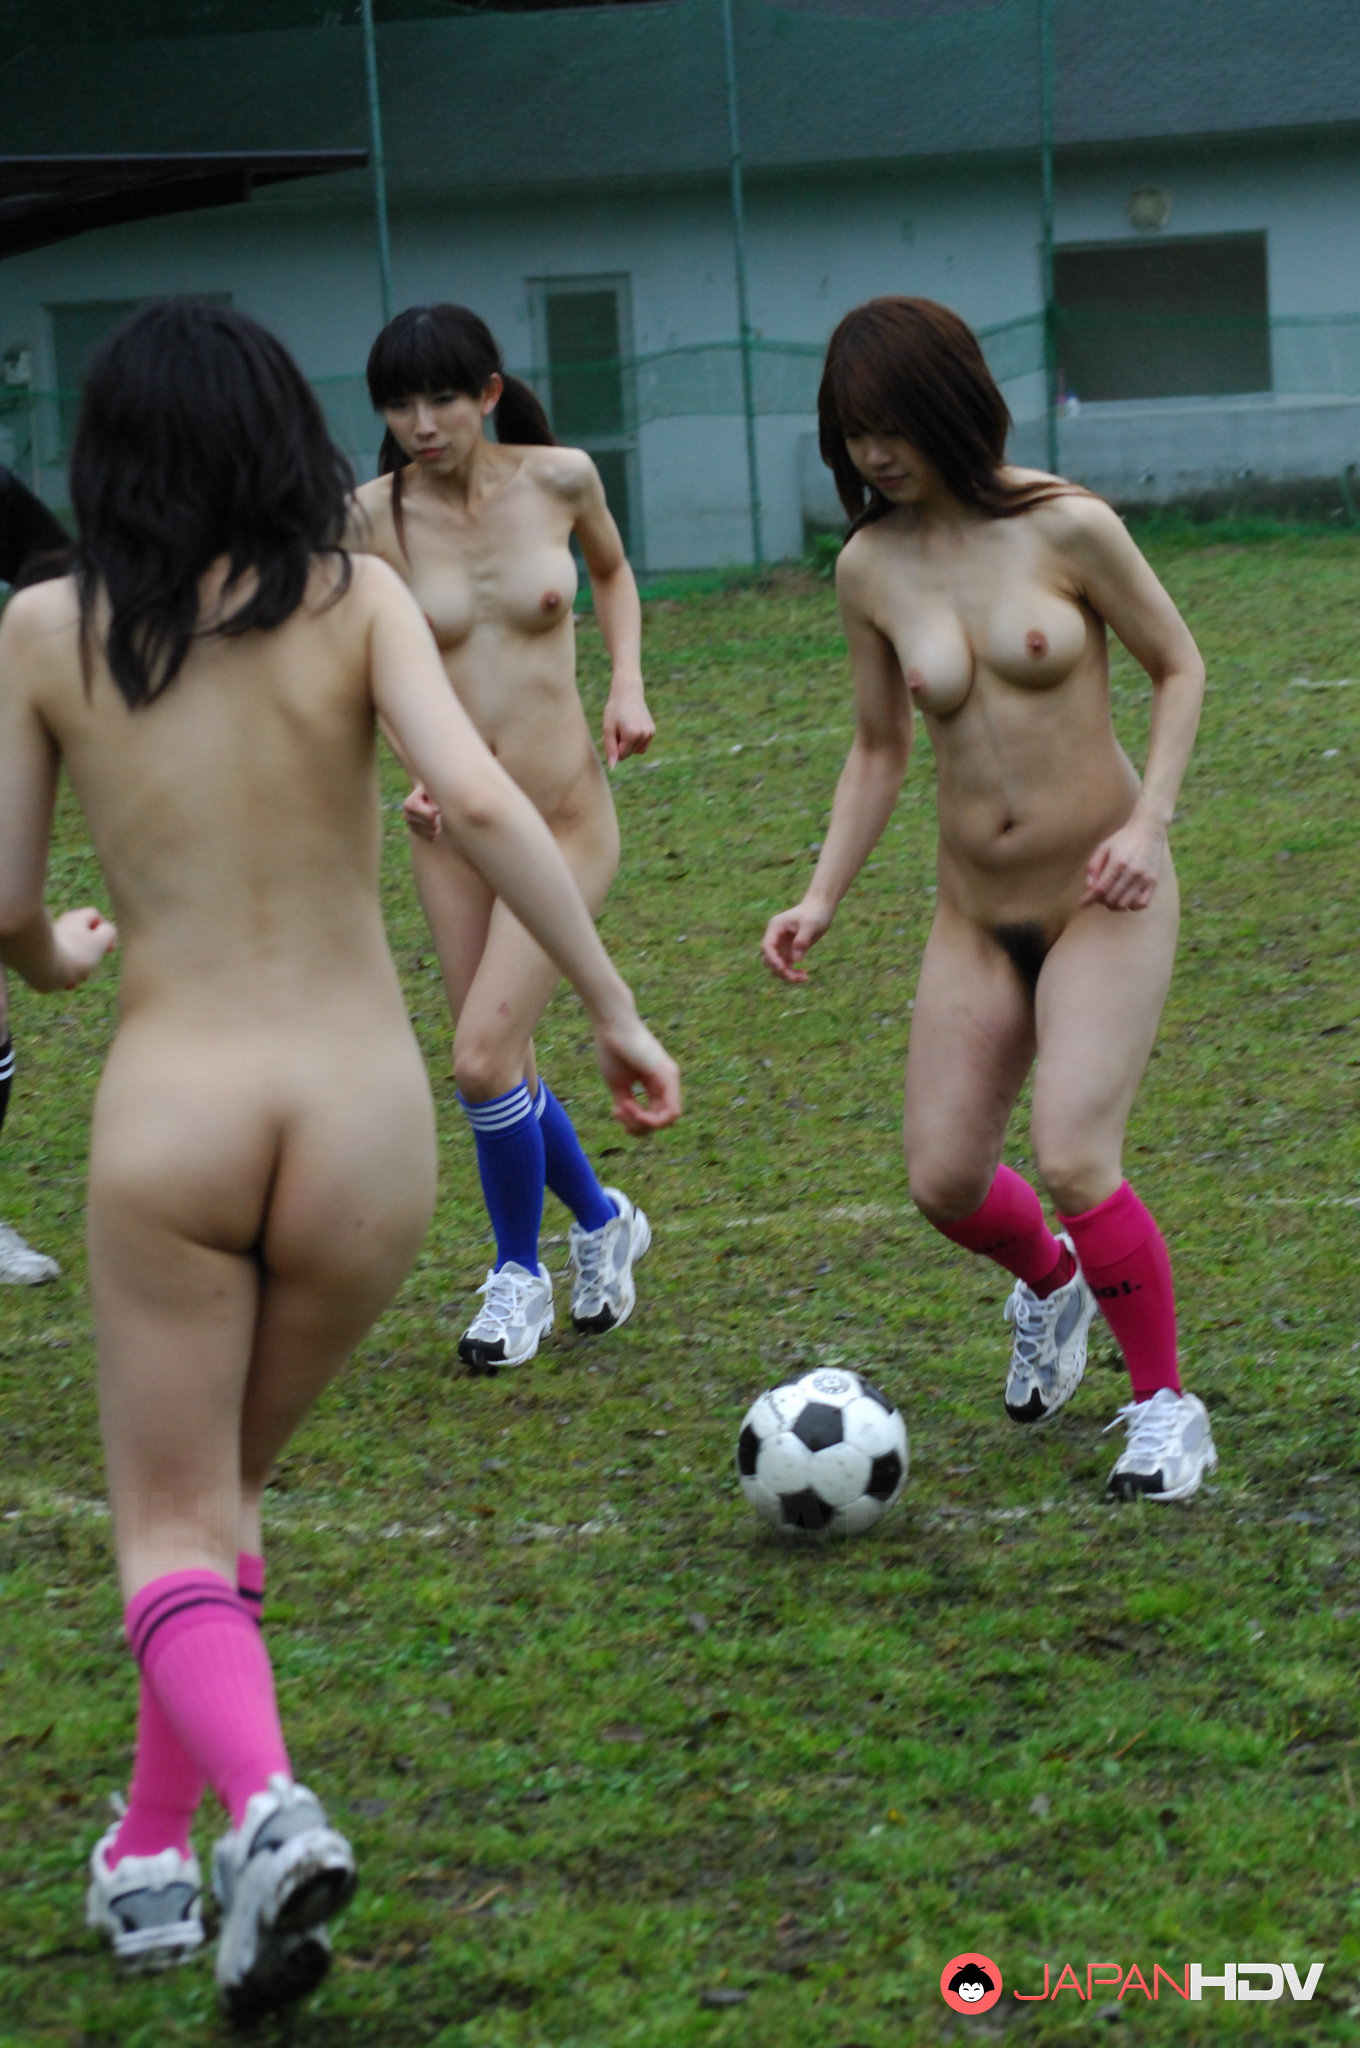 Girl playing naked football sorry, that